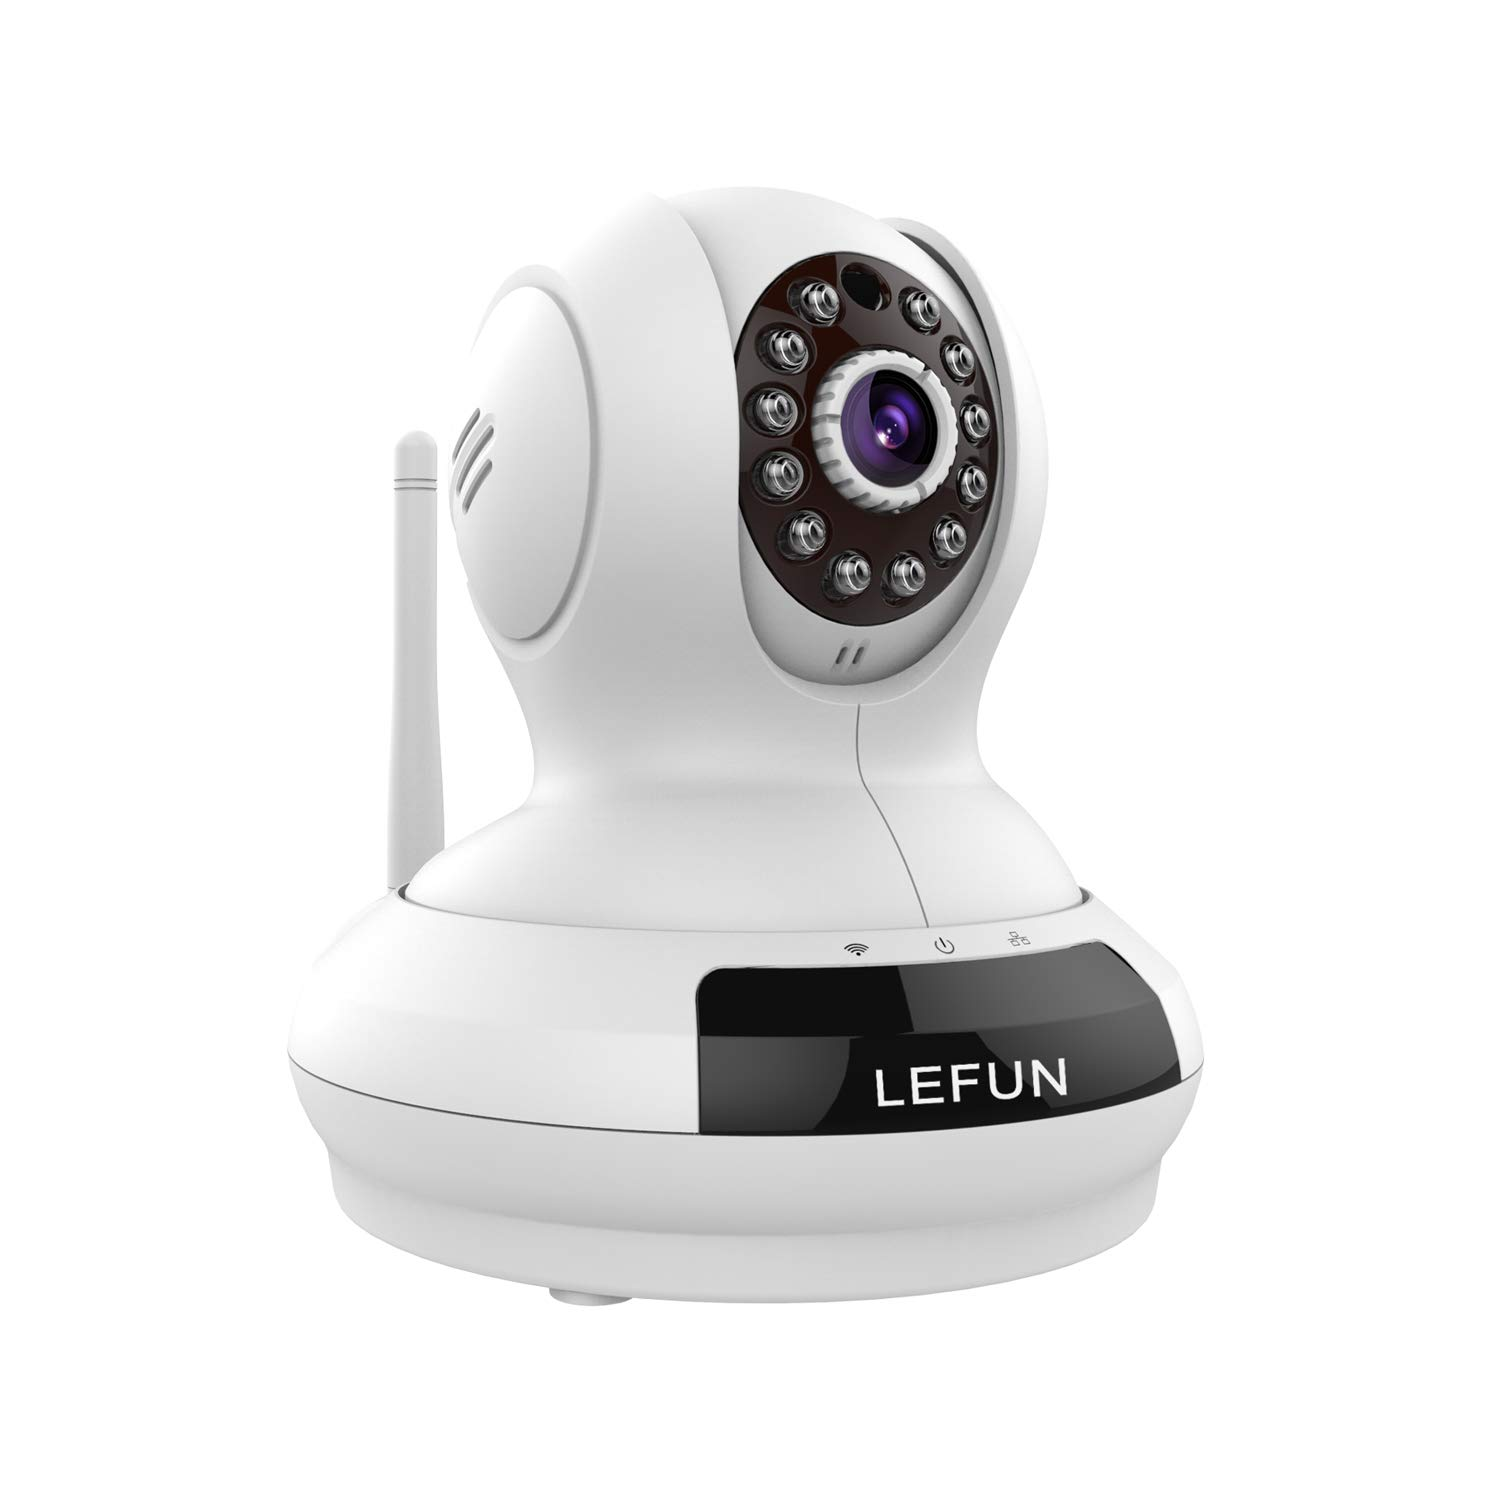 LeFun Wireless Camera, Baby Monitor WiFi IP Surveillance Camera HD 720P Nanny Cam Video Recording with Pan Tilt Remote…